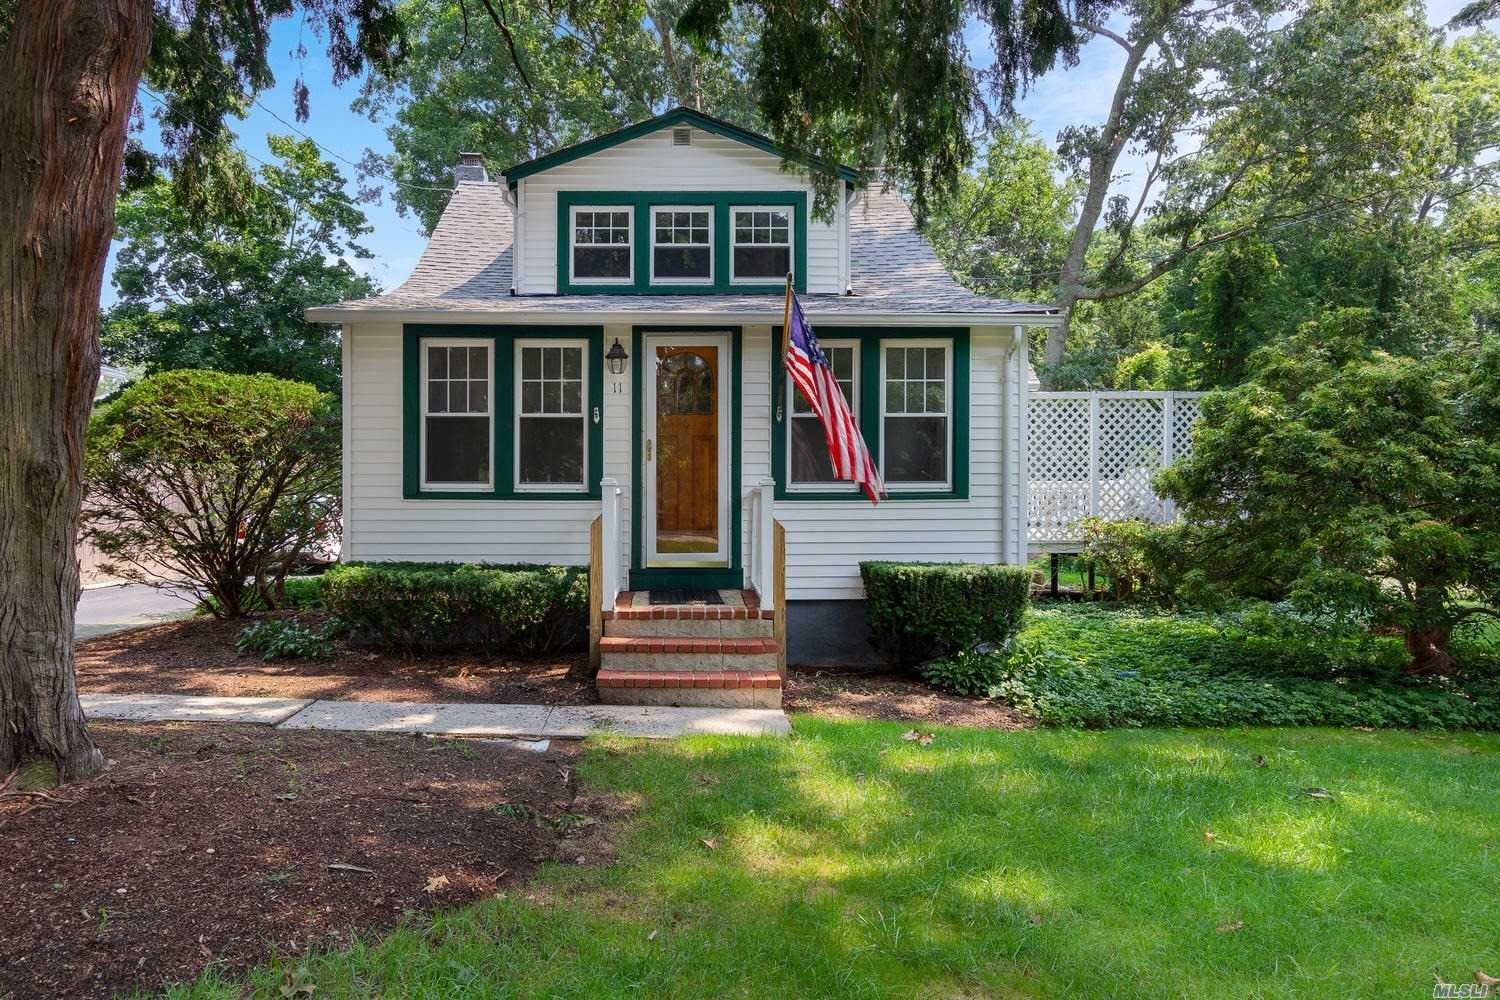 Charming Two Bedroom Cape On An Oversized Flat Piece Of Property. Hardwood Floors Just Refinished And Fresh Paint Makes This Adorable Home Ready To Move Right In! Entertain In Your Private Yard On Your Spacious Deck. Won't Last Long!